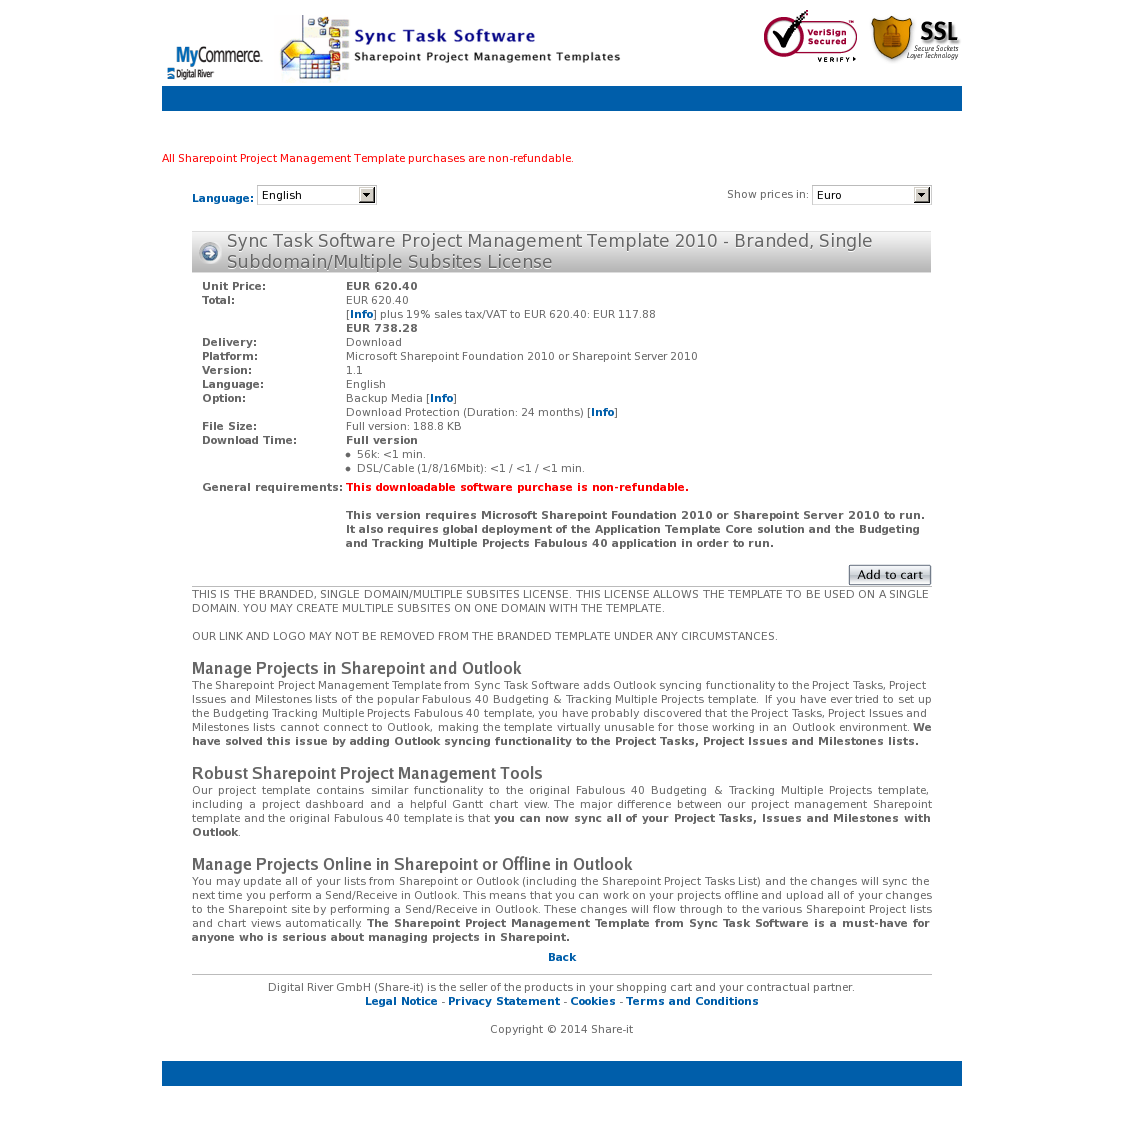 Sync Task Software Project Management Template 2010 - Branded, Single Subdomain/Multiple Subsites License